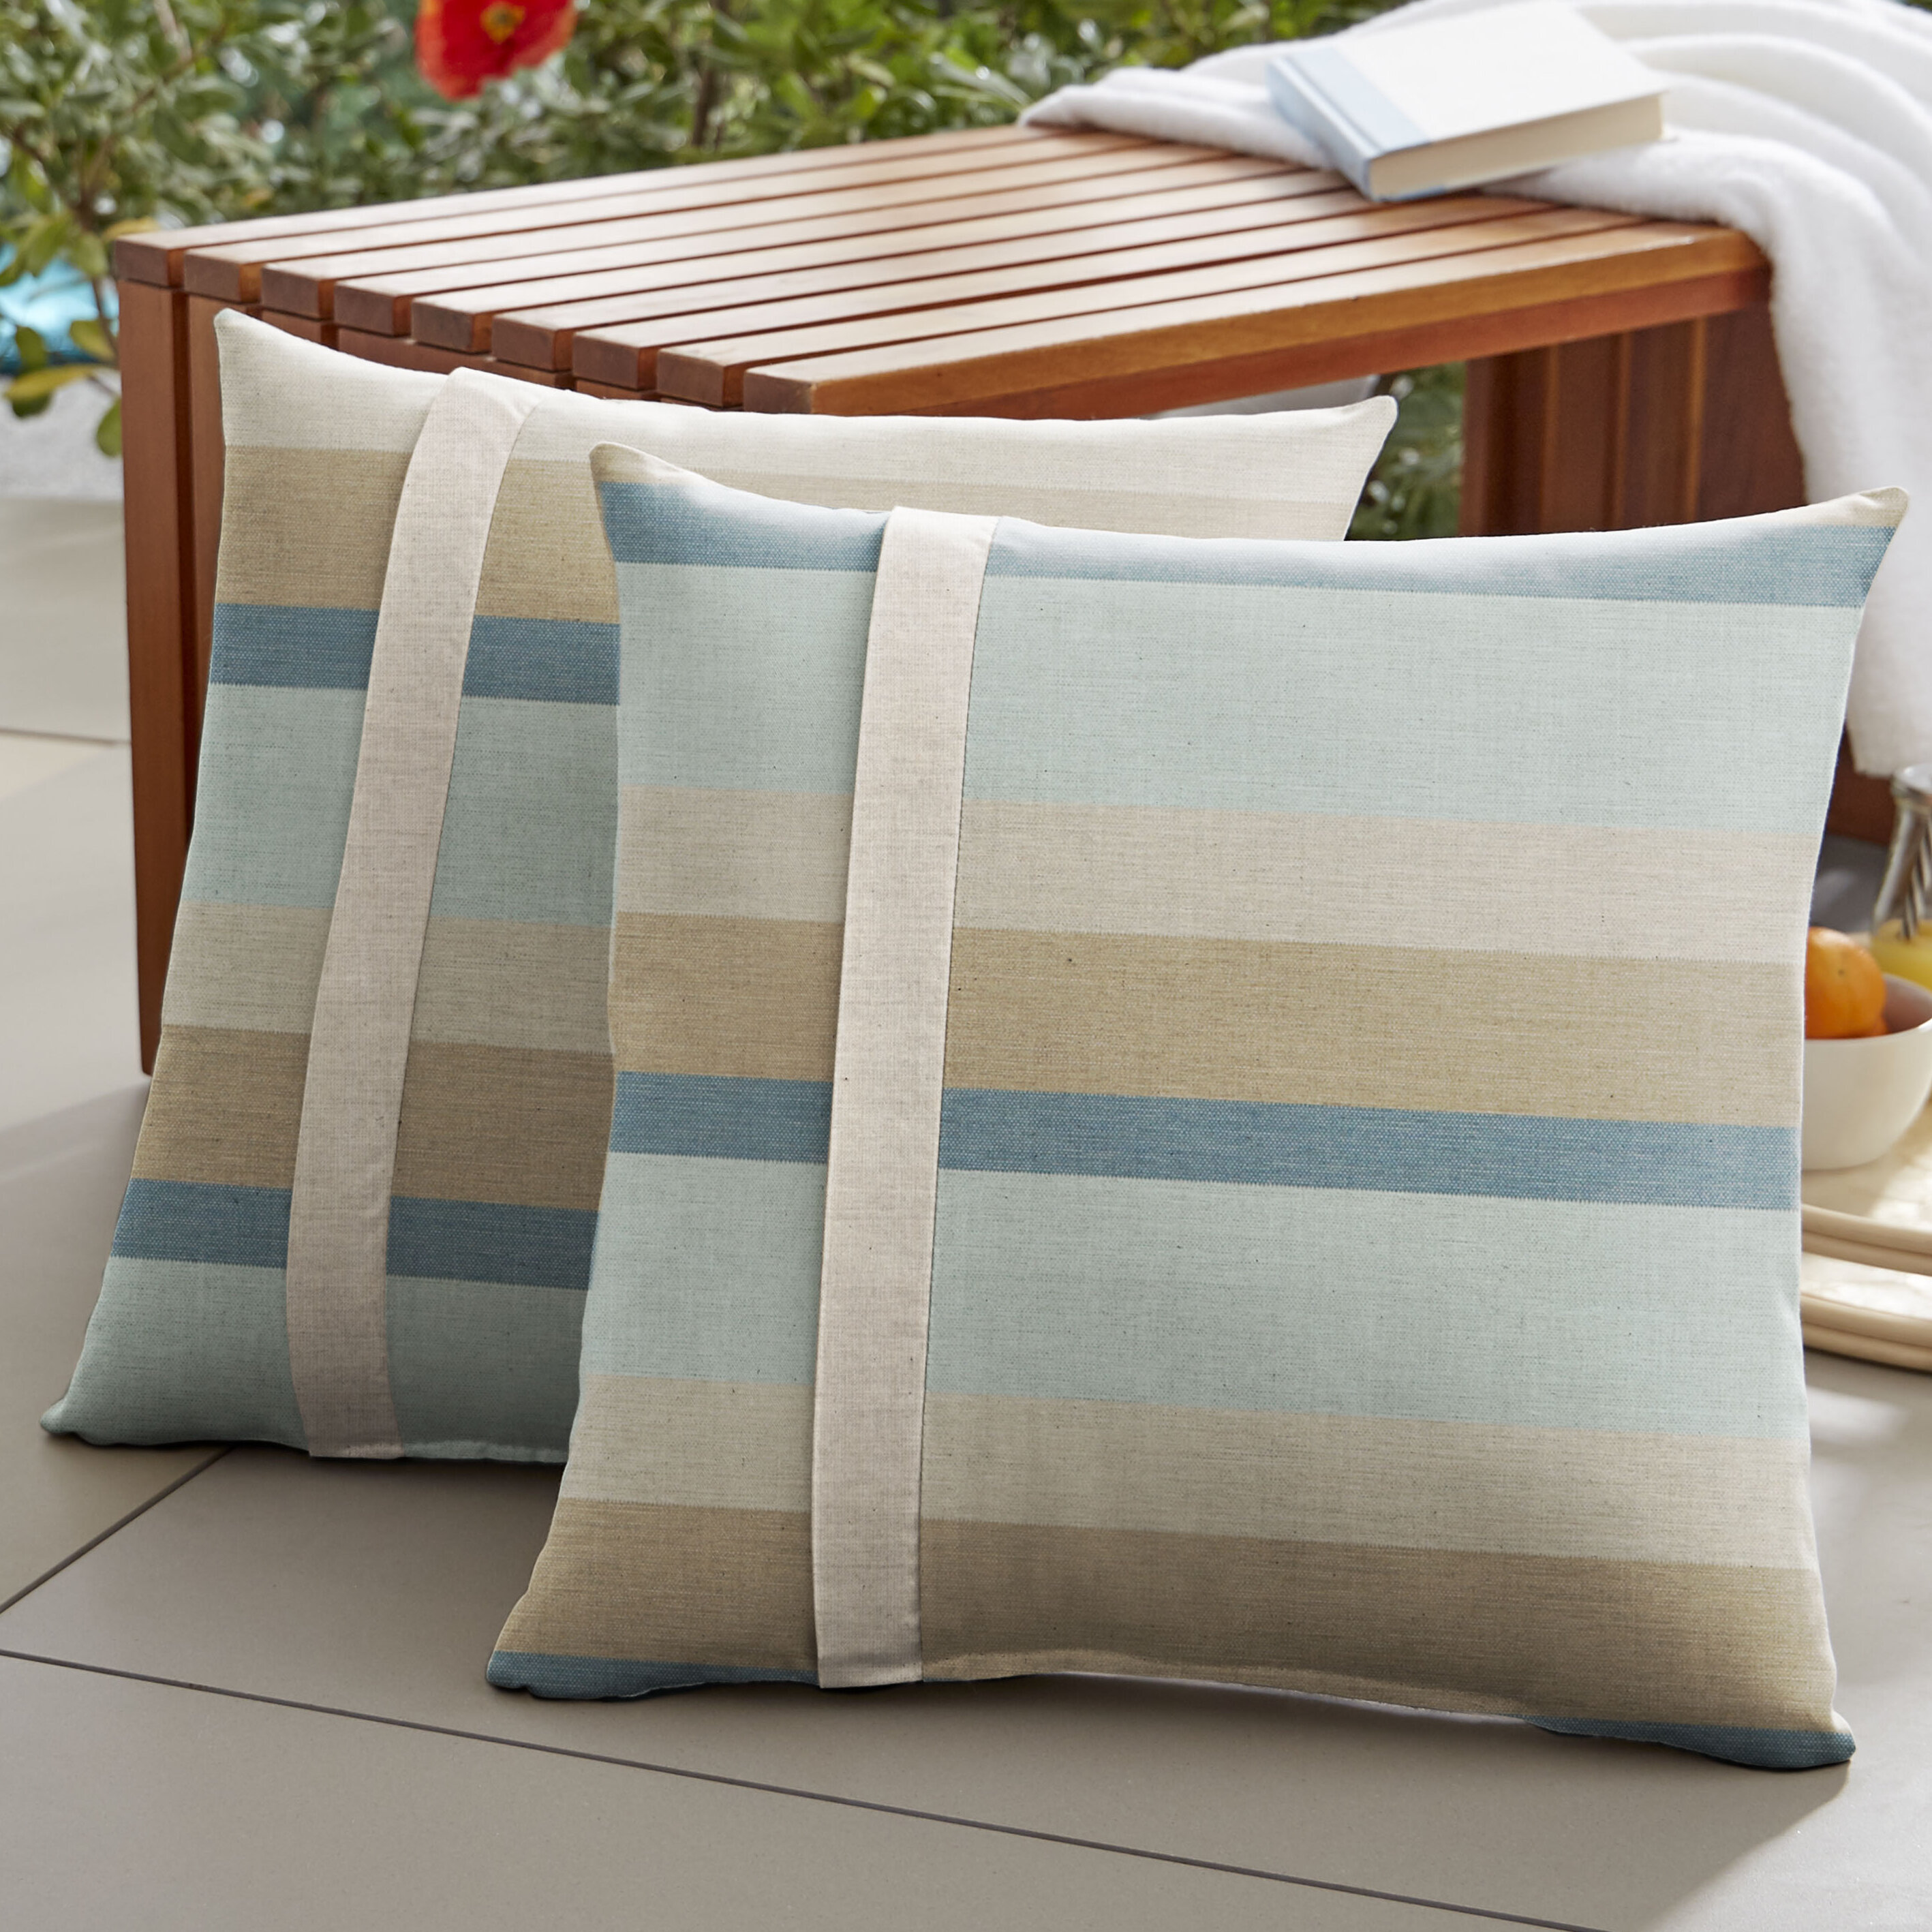 Highland Dunes Ellaline Indoor Outdoor Throw Pillow Reviews Wayfair